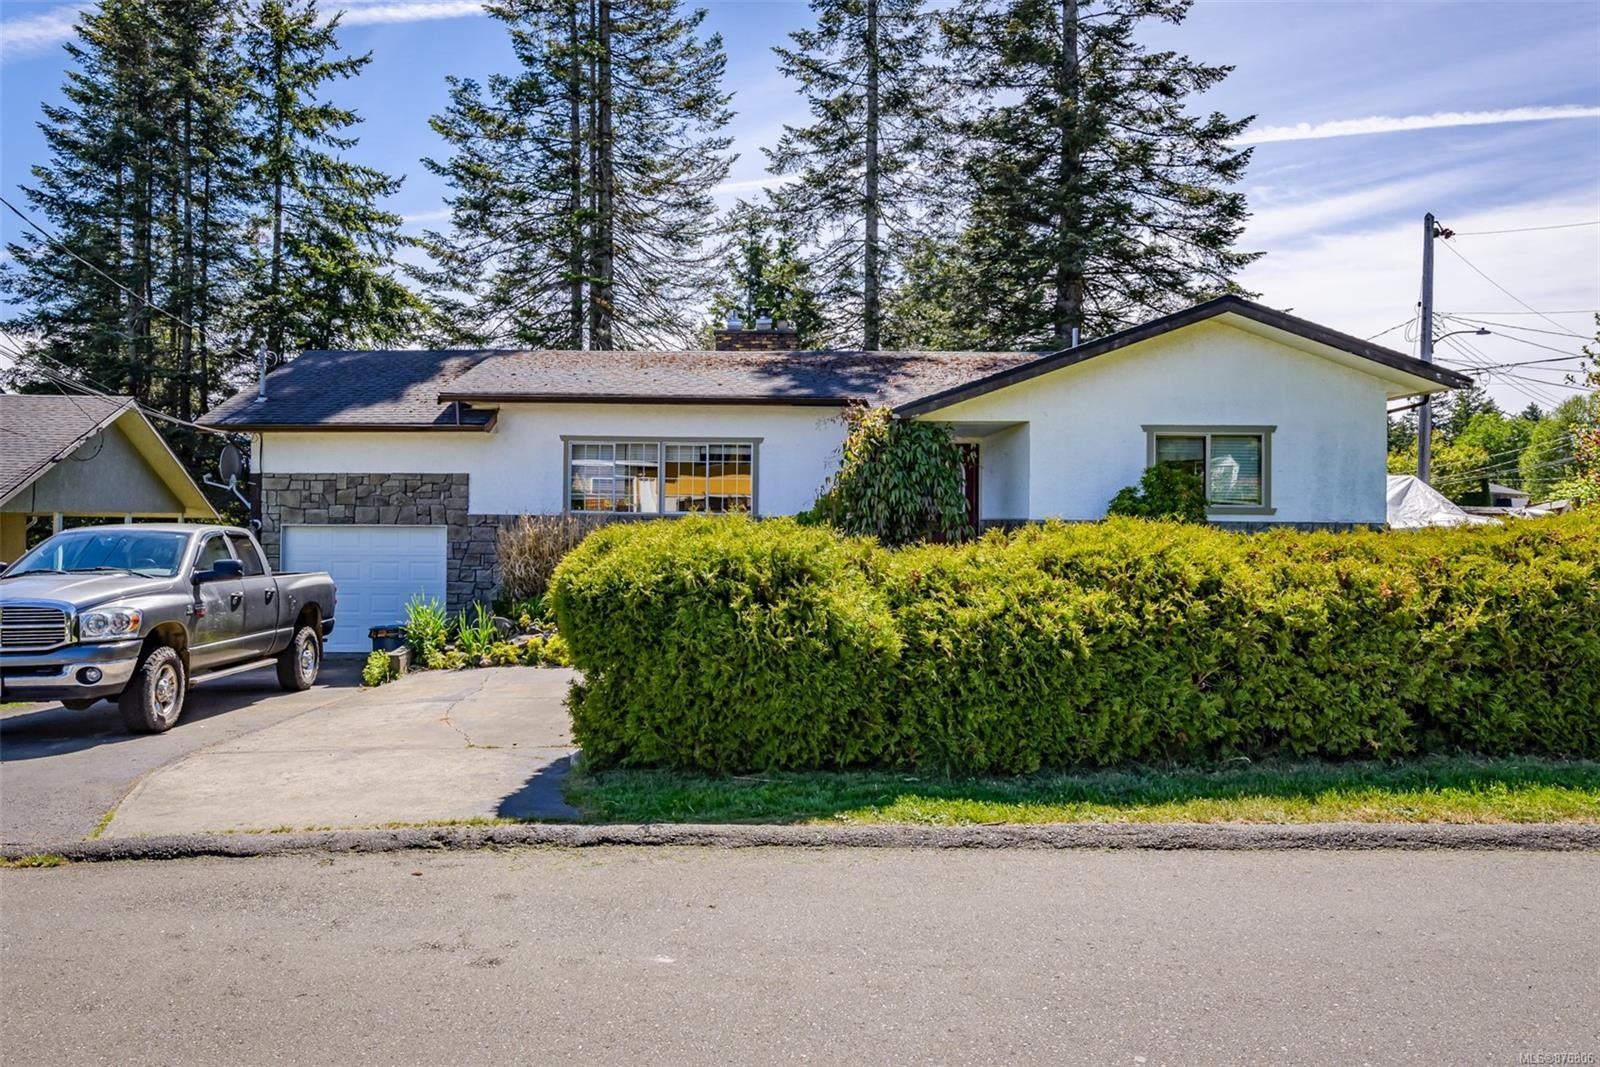 Main Photo: 2223 Strathcona Cres in : CV Comox (Town of) House for sale (Comox Valley)  : MLS®# 876806